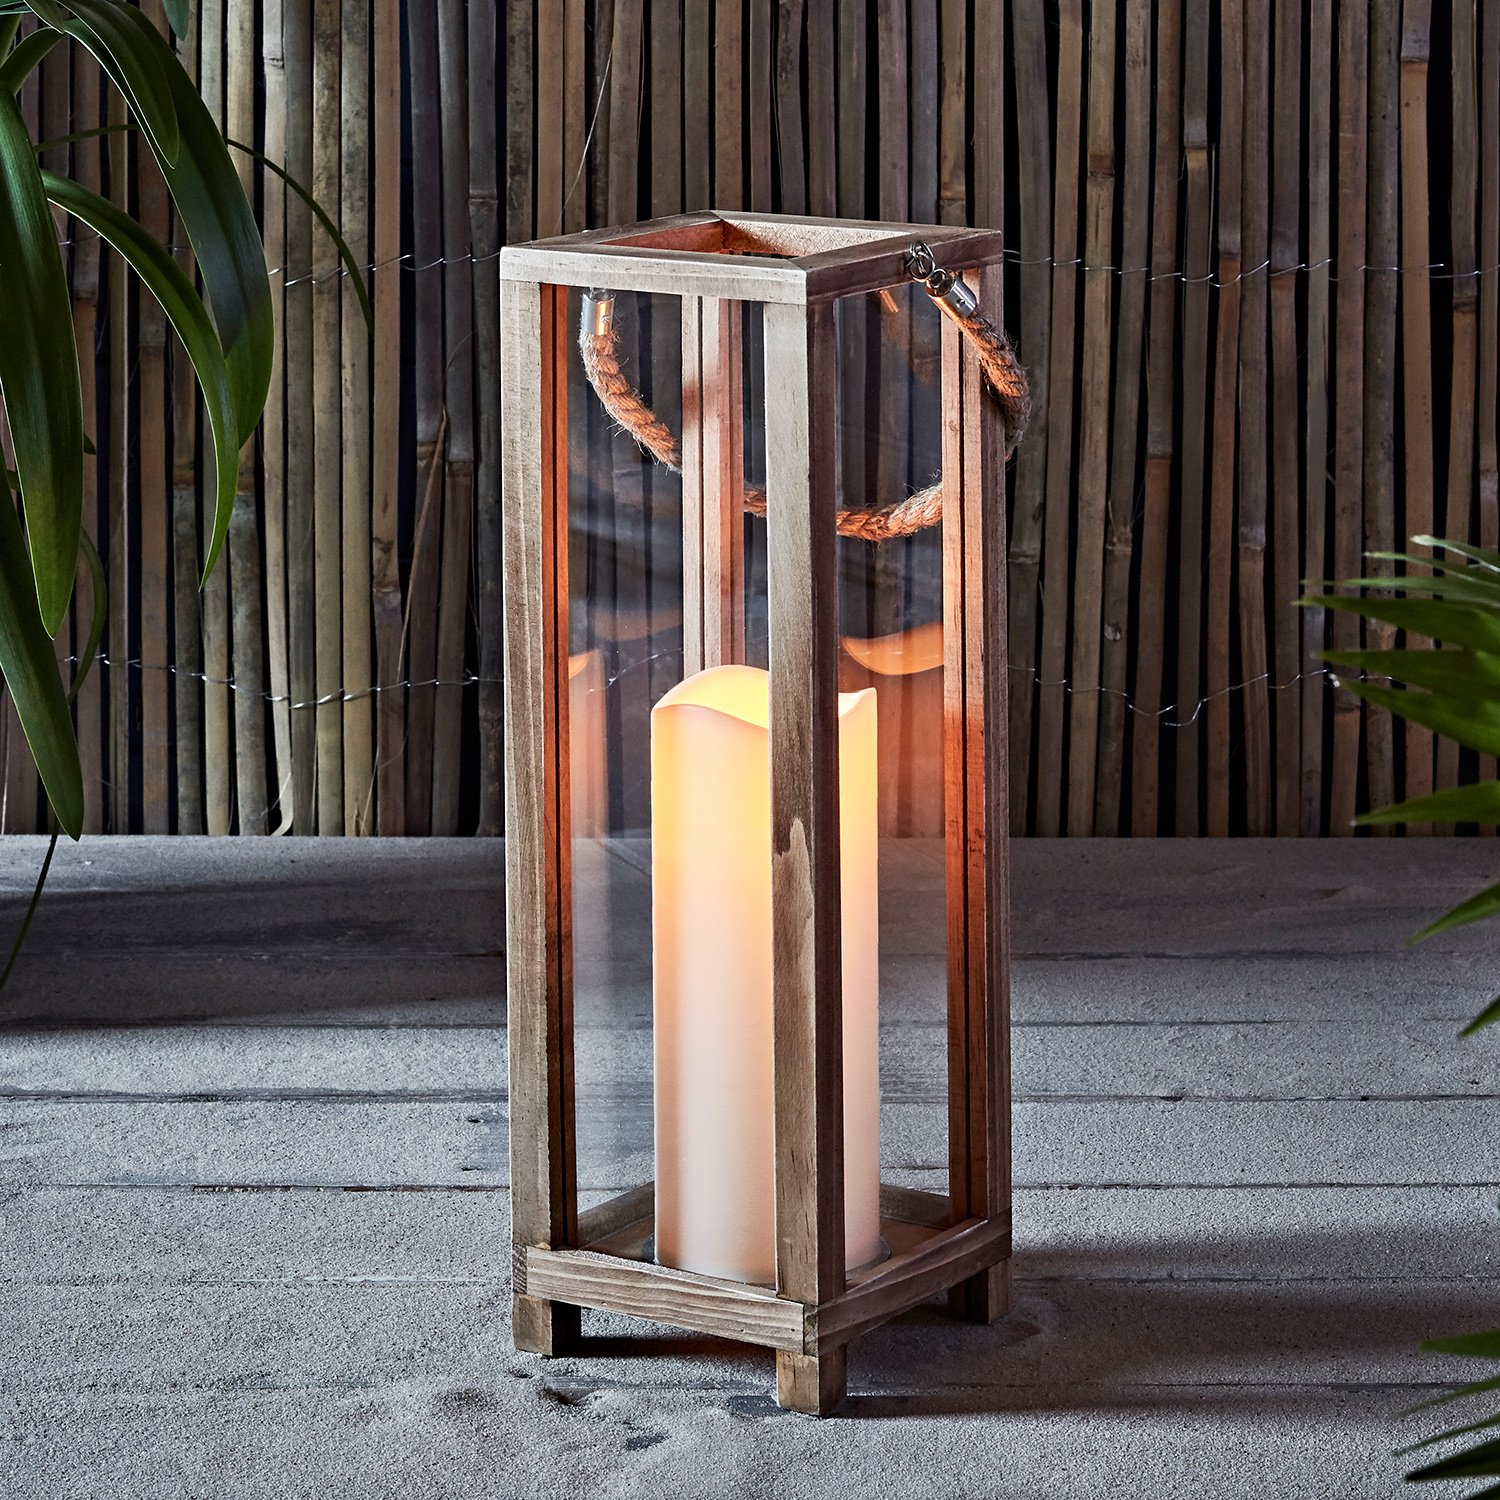 Lights4fun, Inc. Wooden Battery Operated LED Indoor Flameless Candle Lantern with Rope Handle by Lights4fun, Inc.